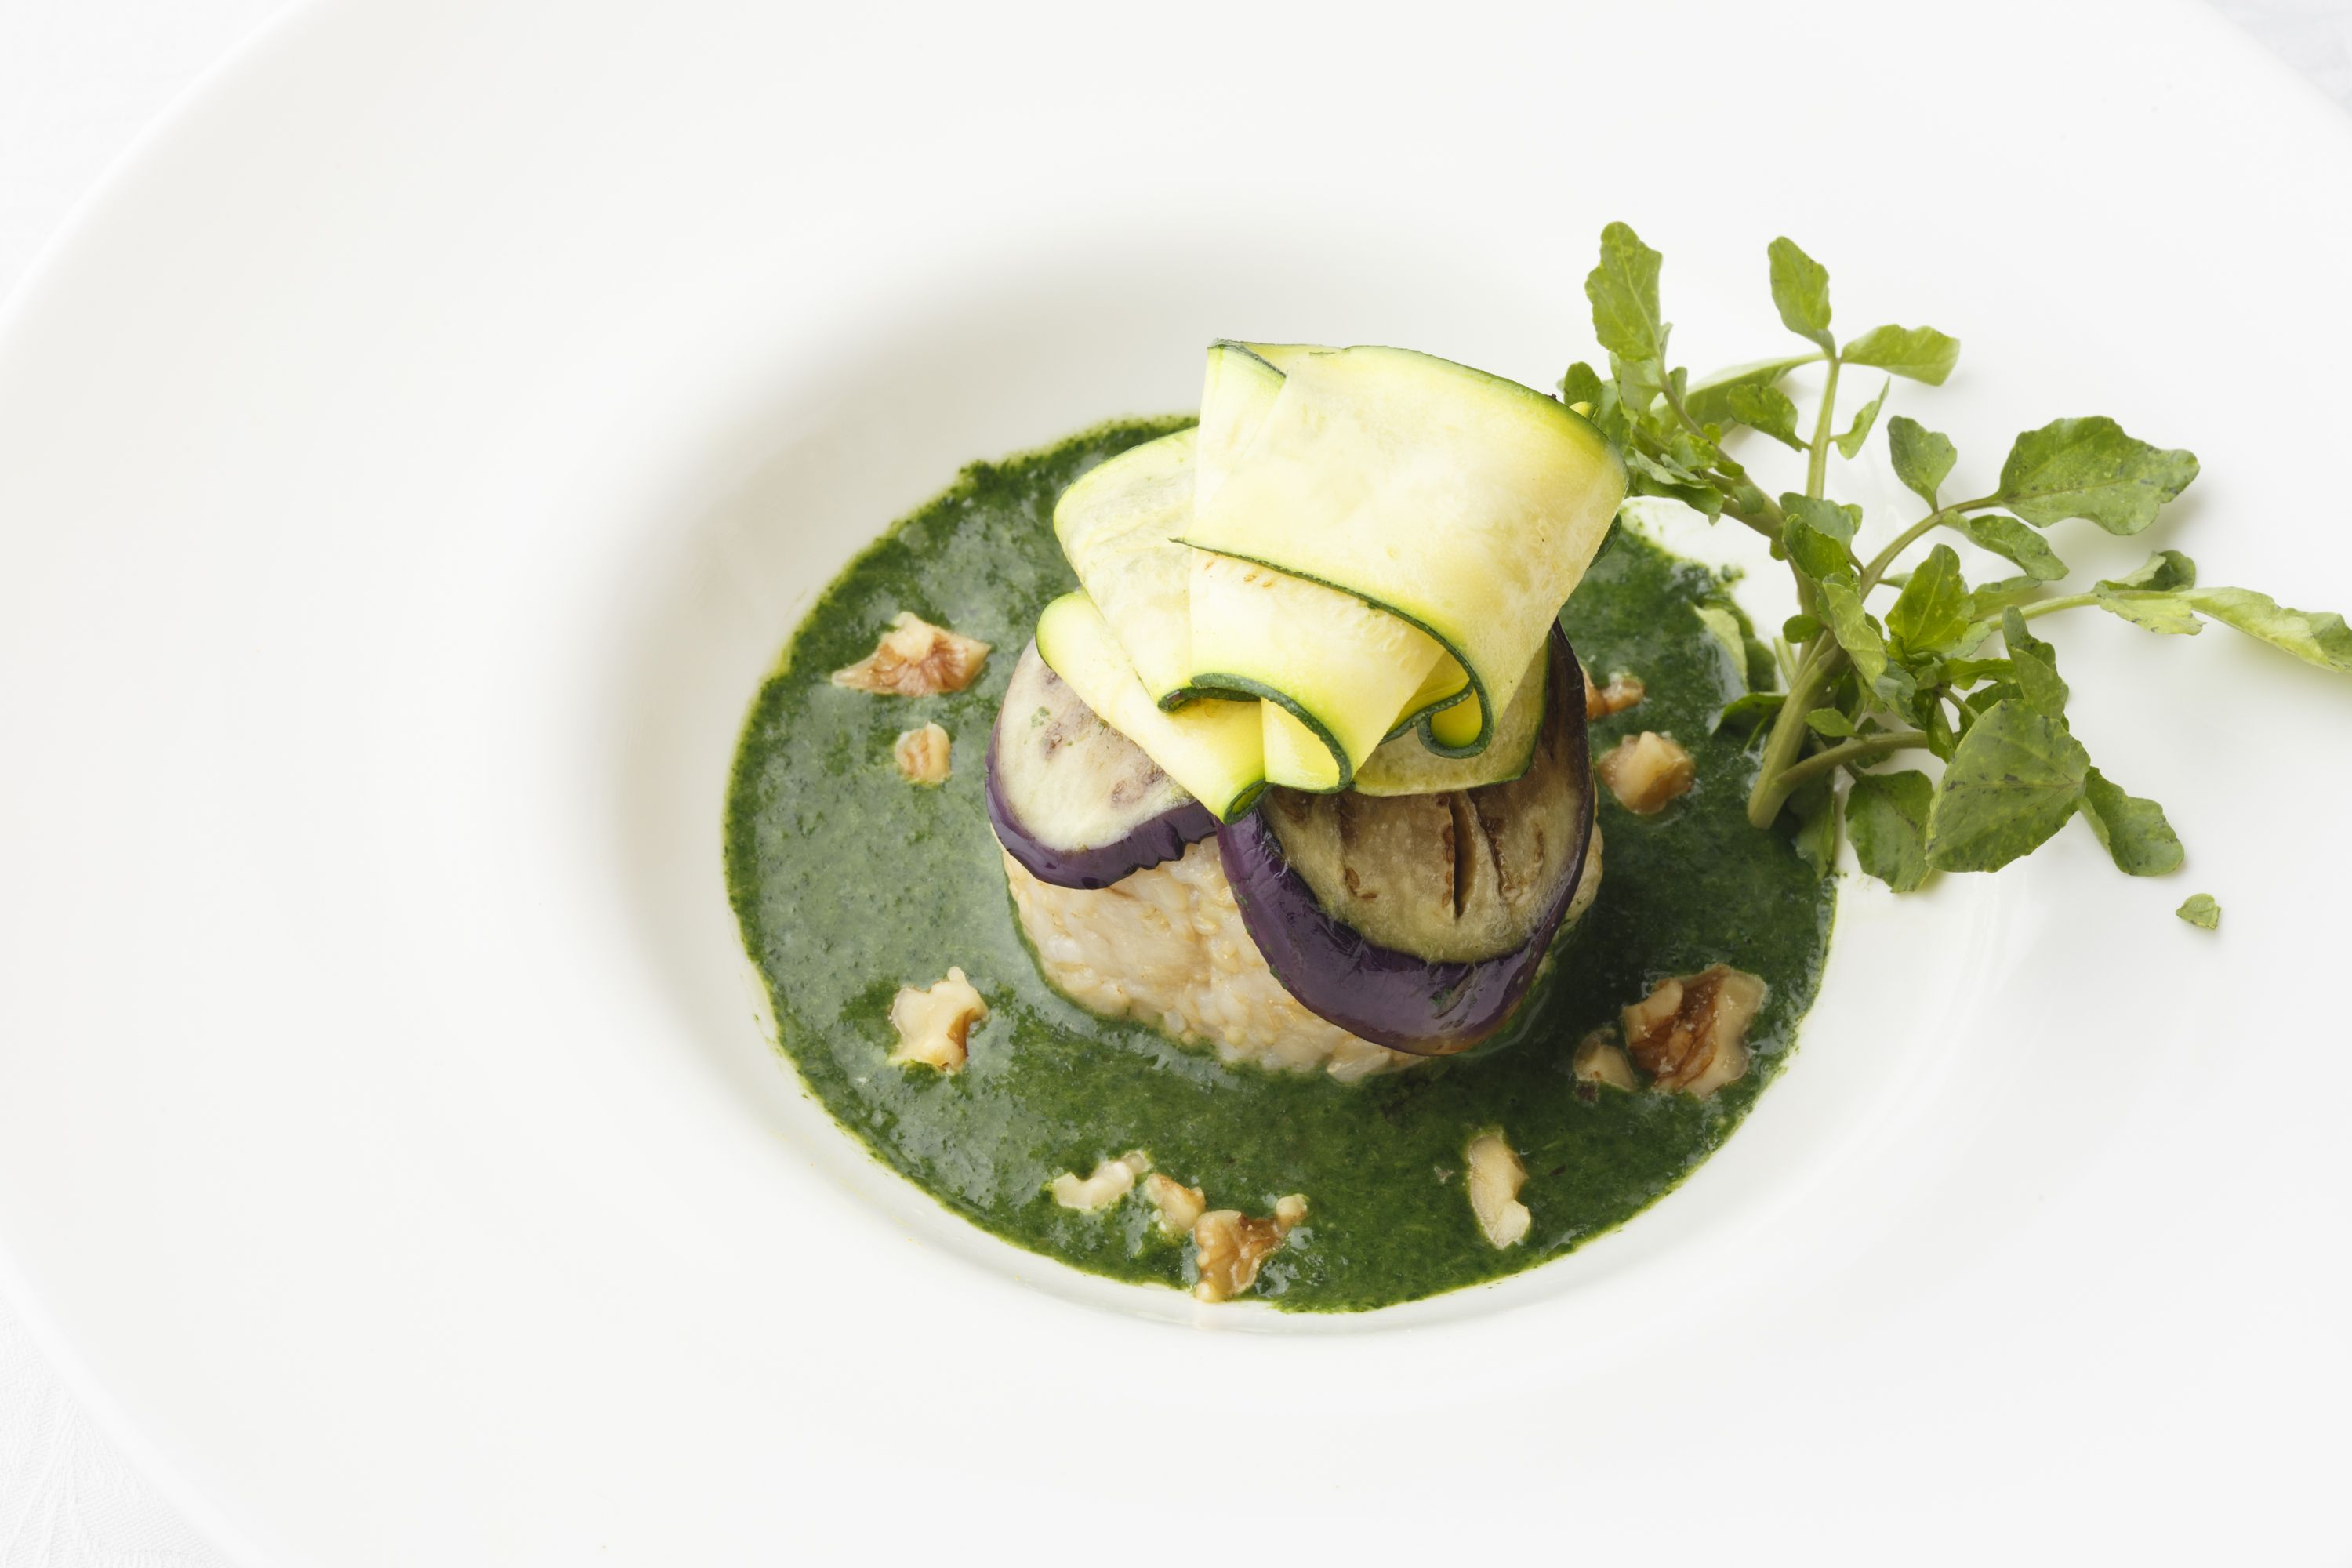 Brown rice on the beauty sauce made of Jew's mallow and bitter melon with grilled eggplants and zucchini